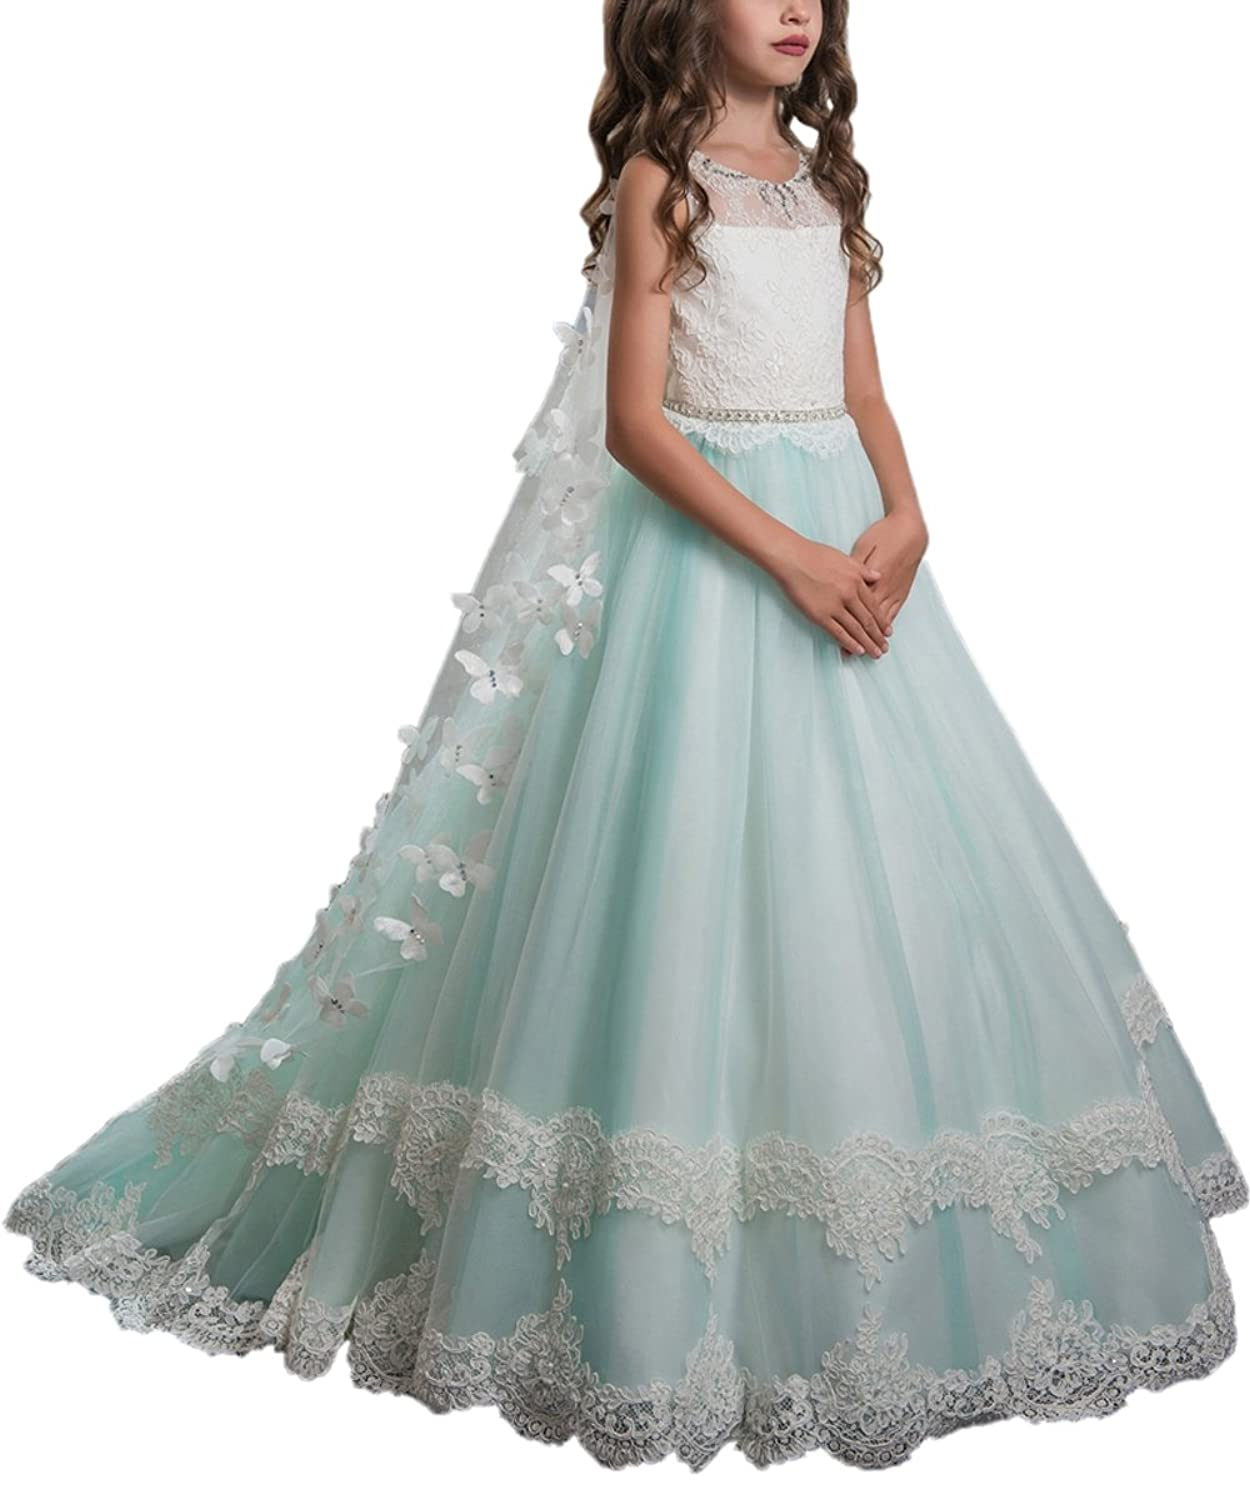 PLwedding Lace Flower Girls Dresses Kids First Communion Dress Princess Wedding Pageant Ball Gown